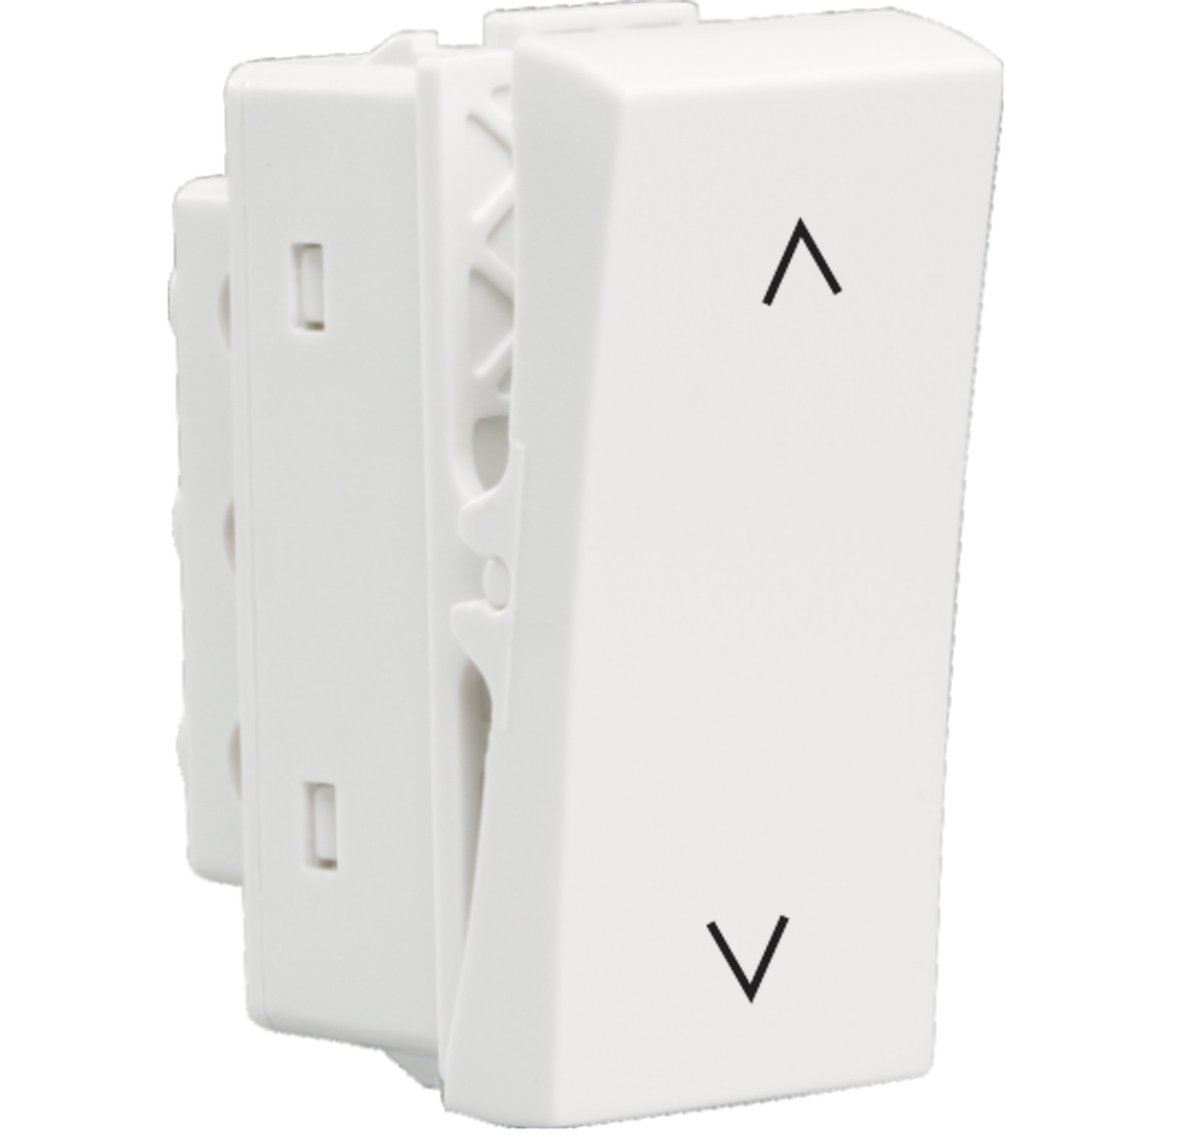 Crabtree India Modular Light Sensor Switches Sockets Online Two Way Switch 16ax